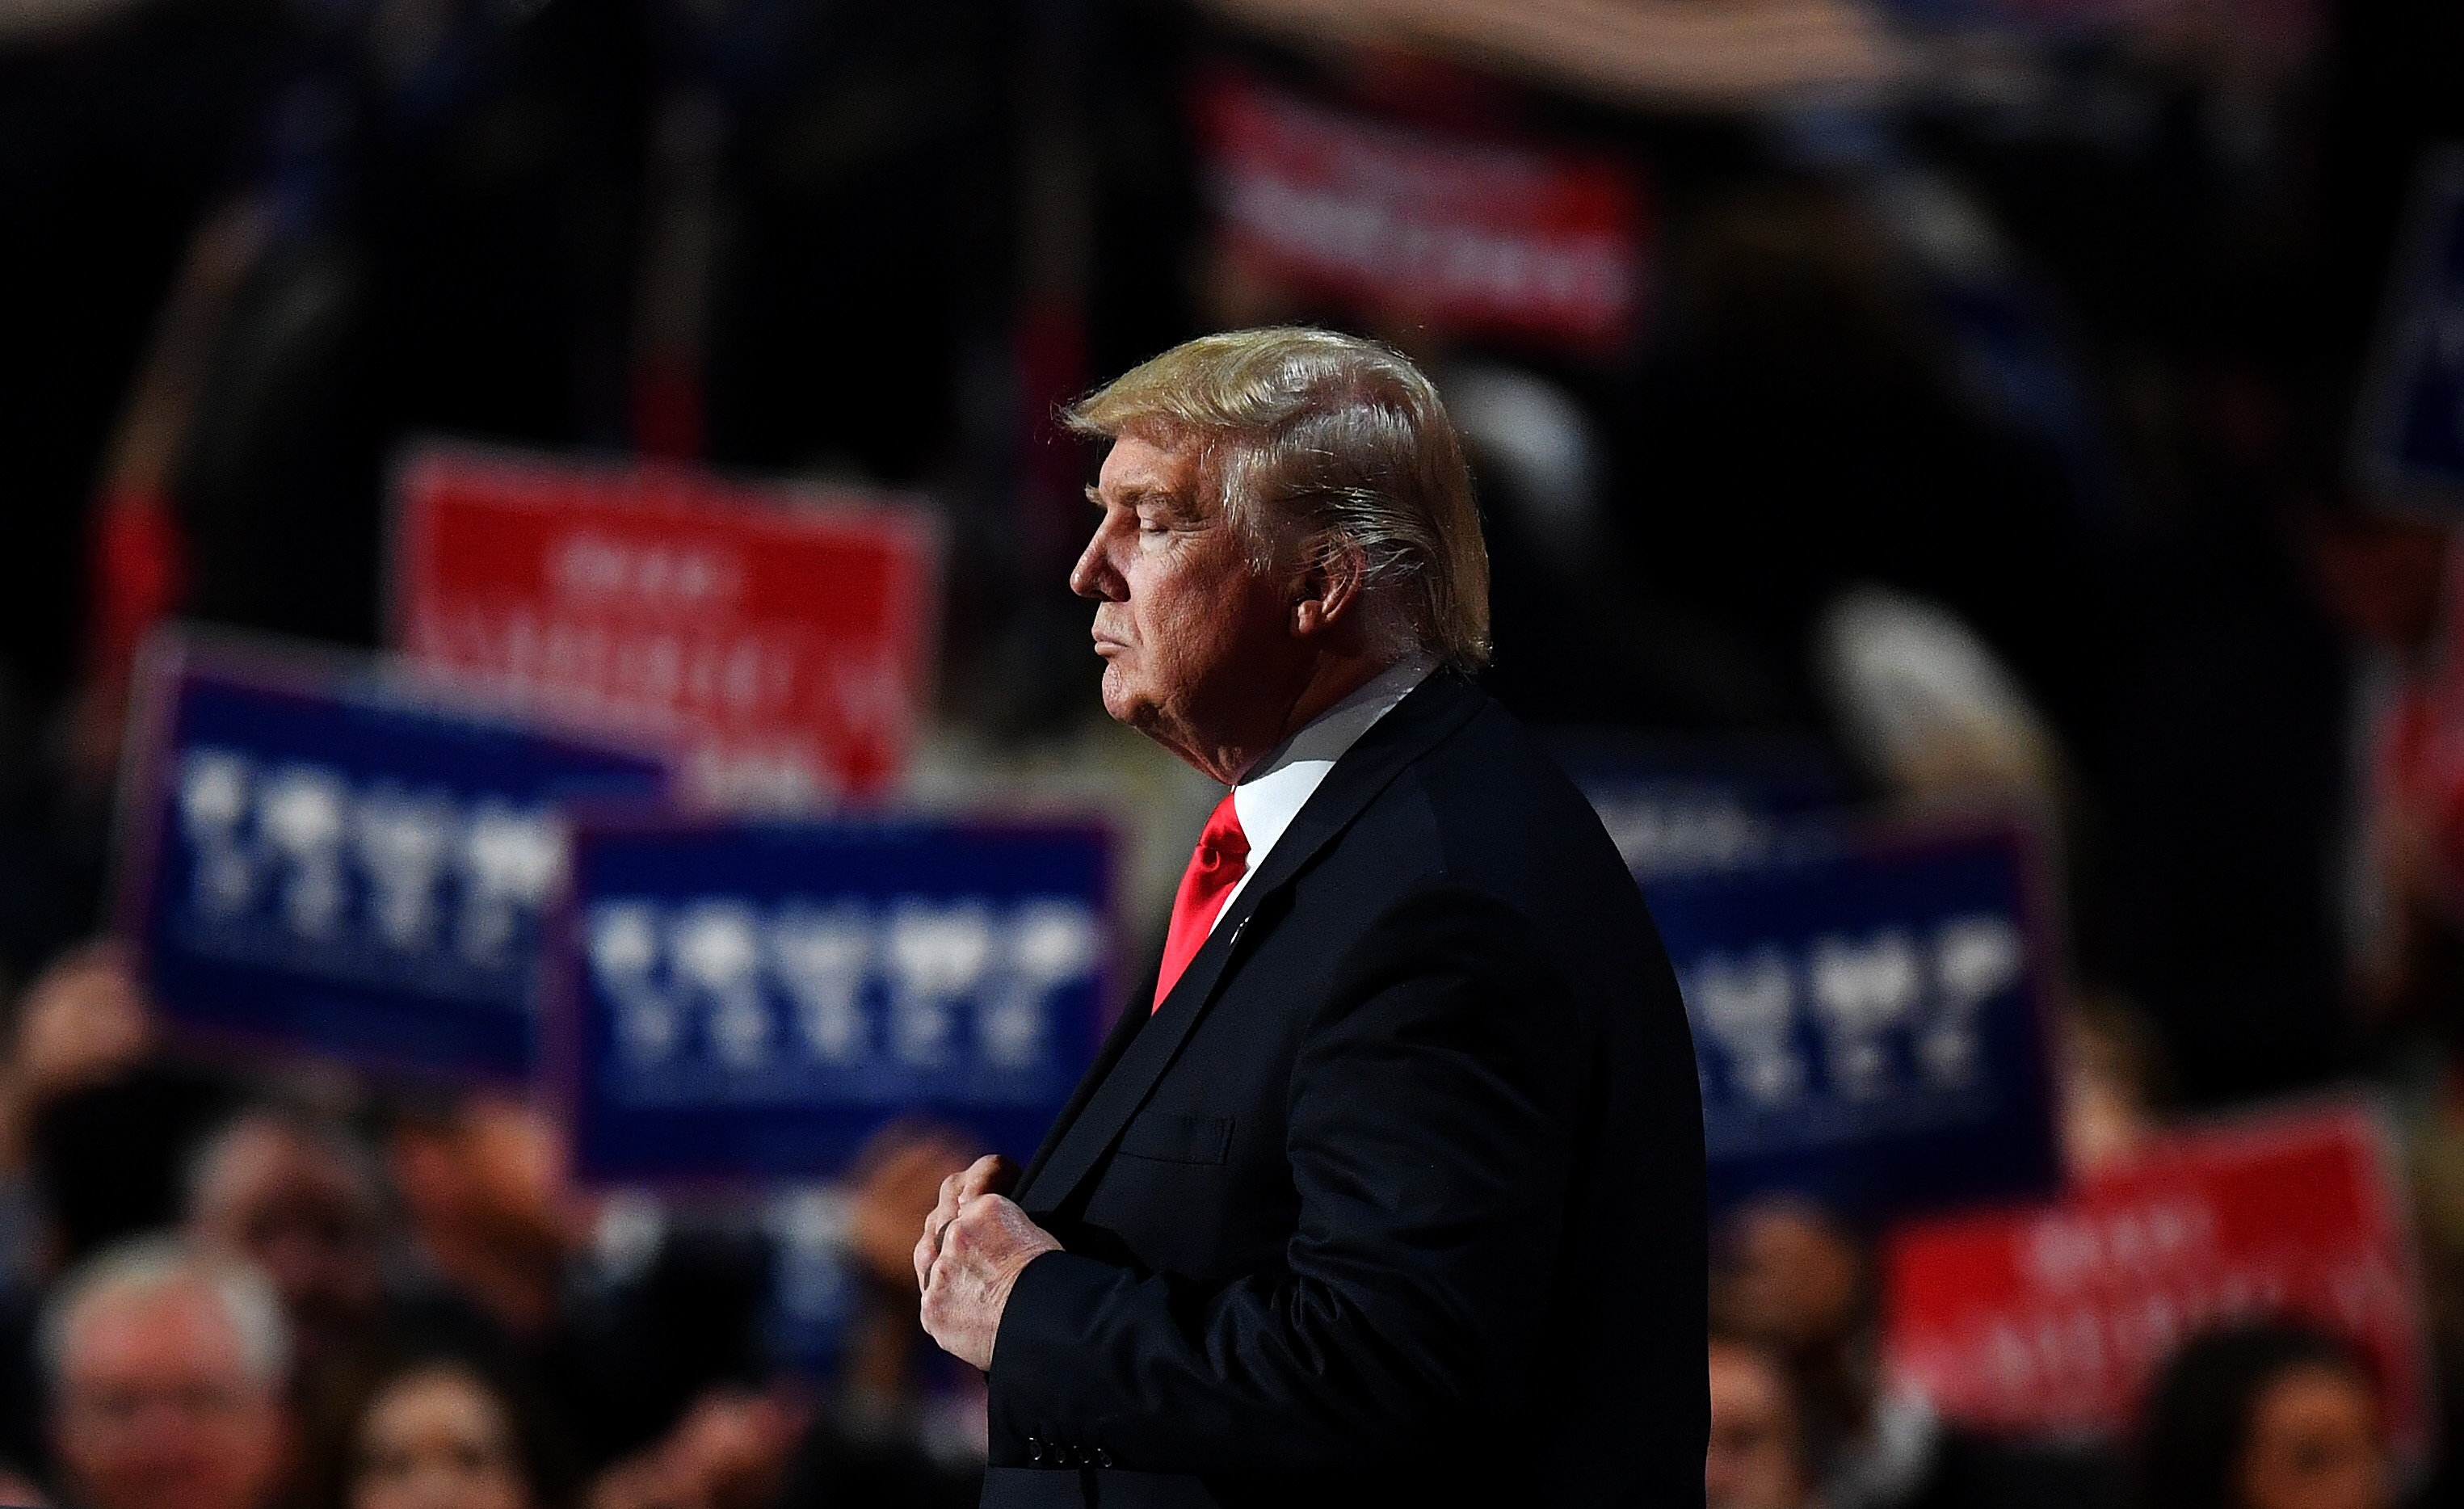 Republican presidential candidate Donald Trump pauses during his speech at the Republican National Convention on July 21, 2016.